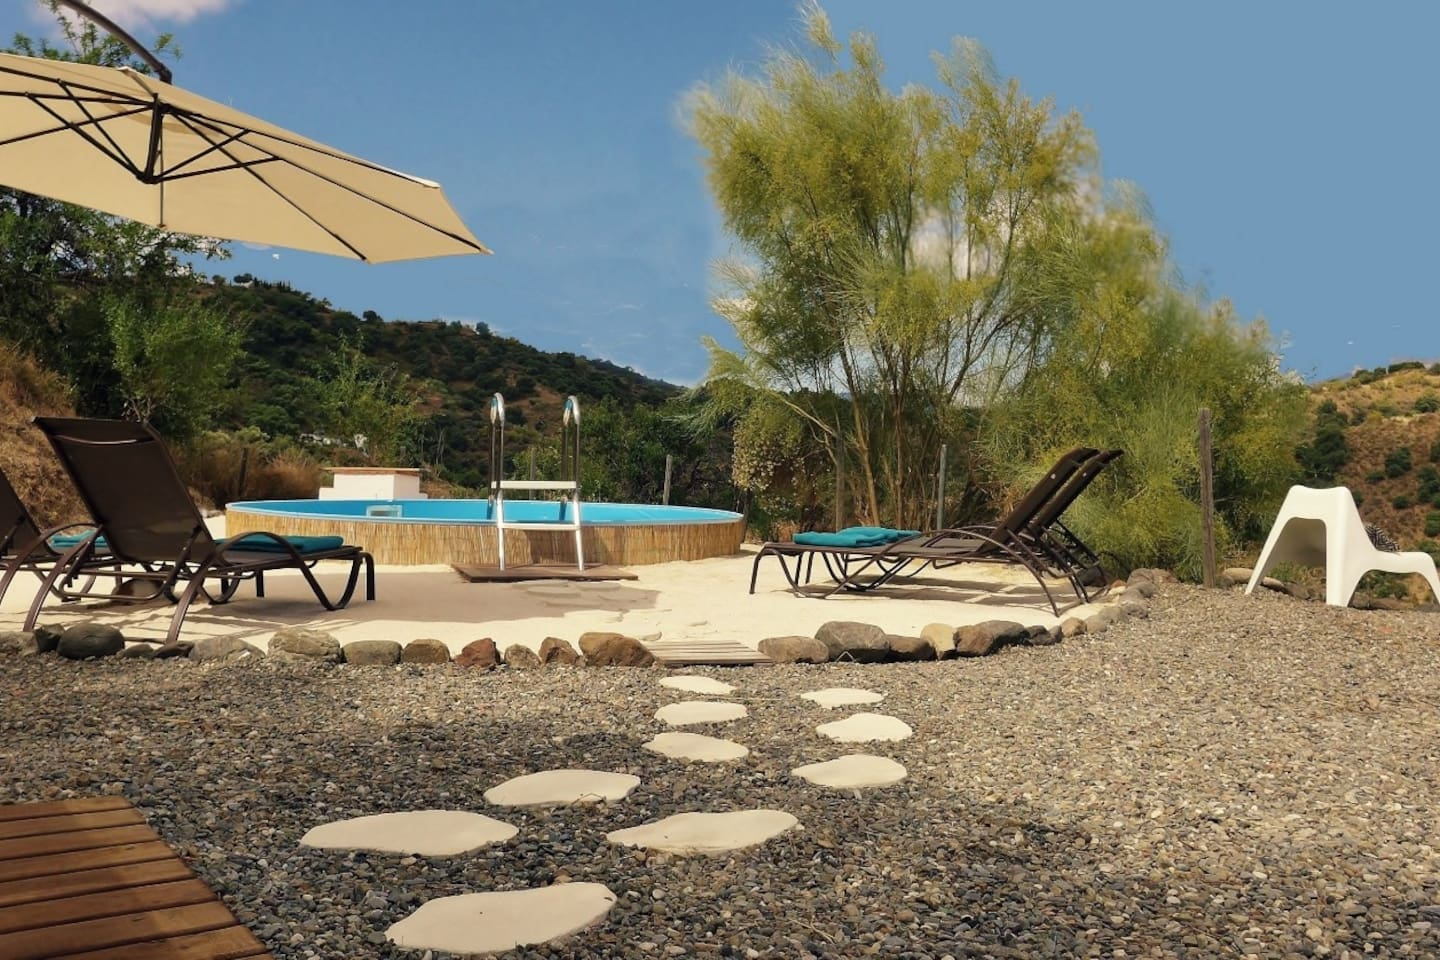 Corazón-andaluz-Bed-and-breakfast (1)